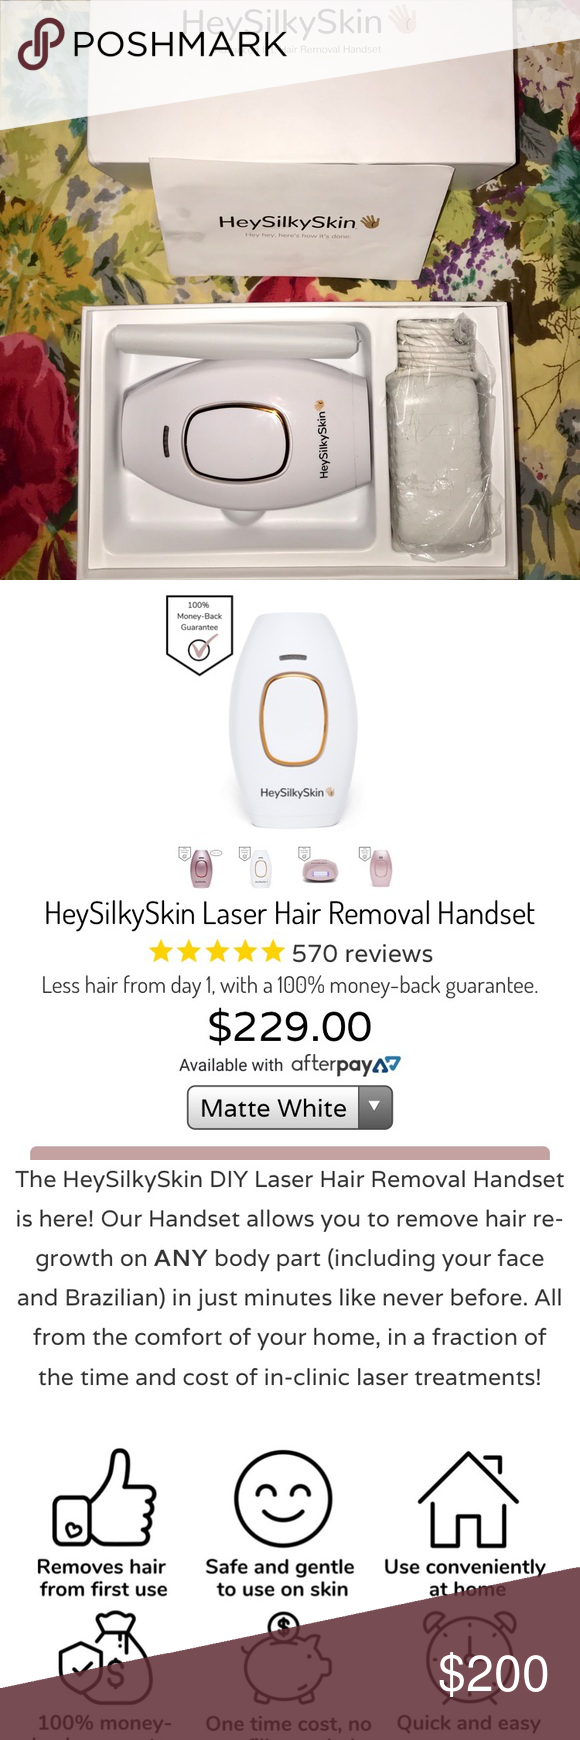 At home Hair removal laser Sick of shaving or expensive